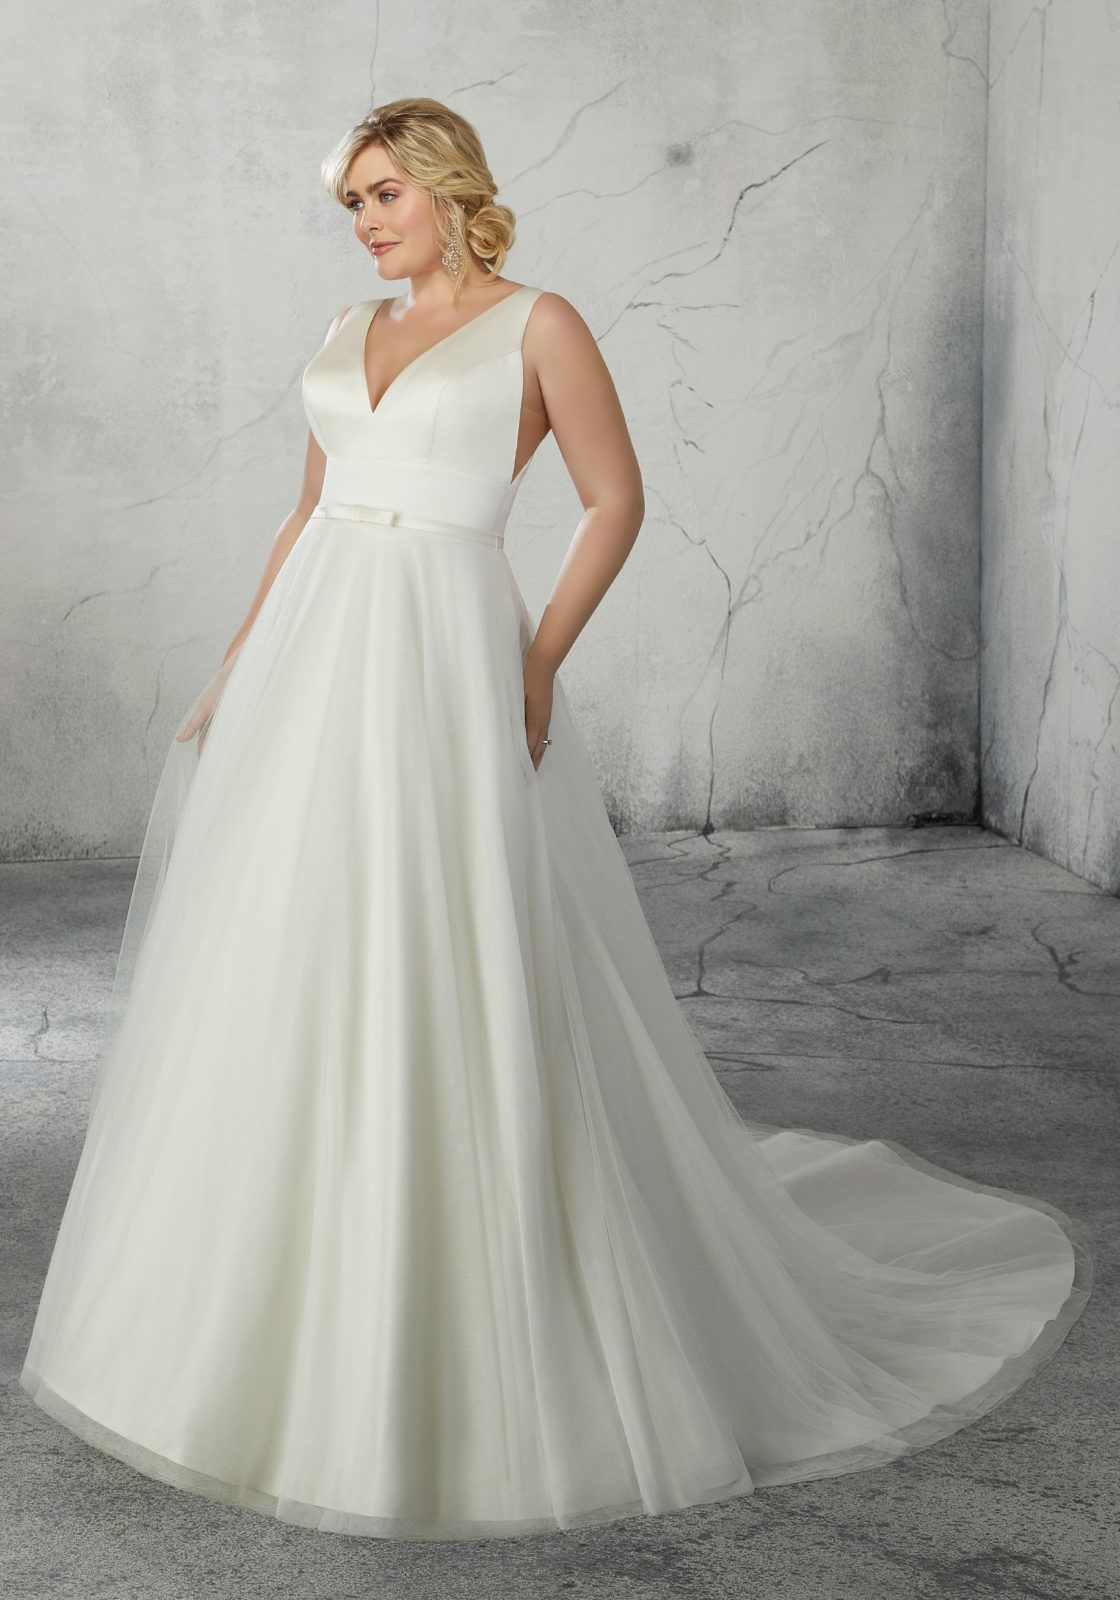 Rolanda Plus Size Wedding Dress Morilee (With images